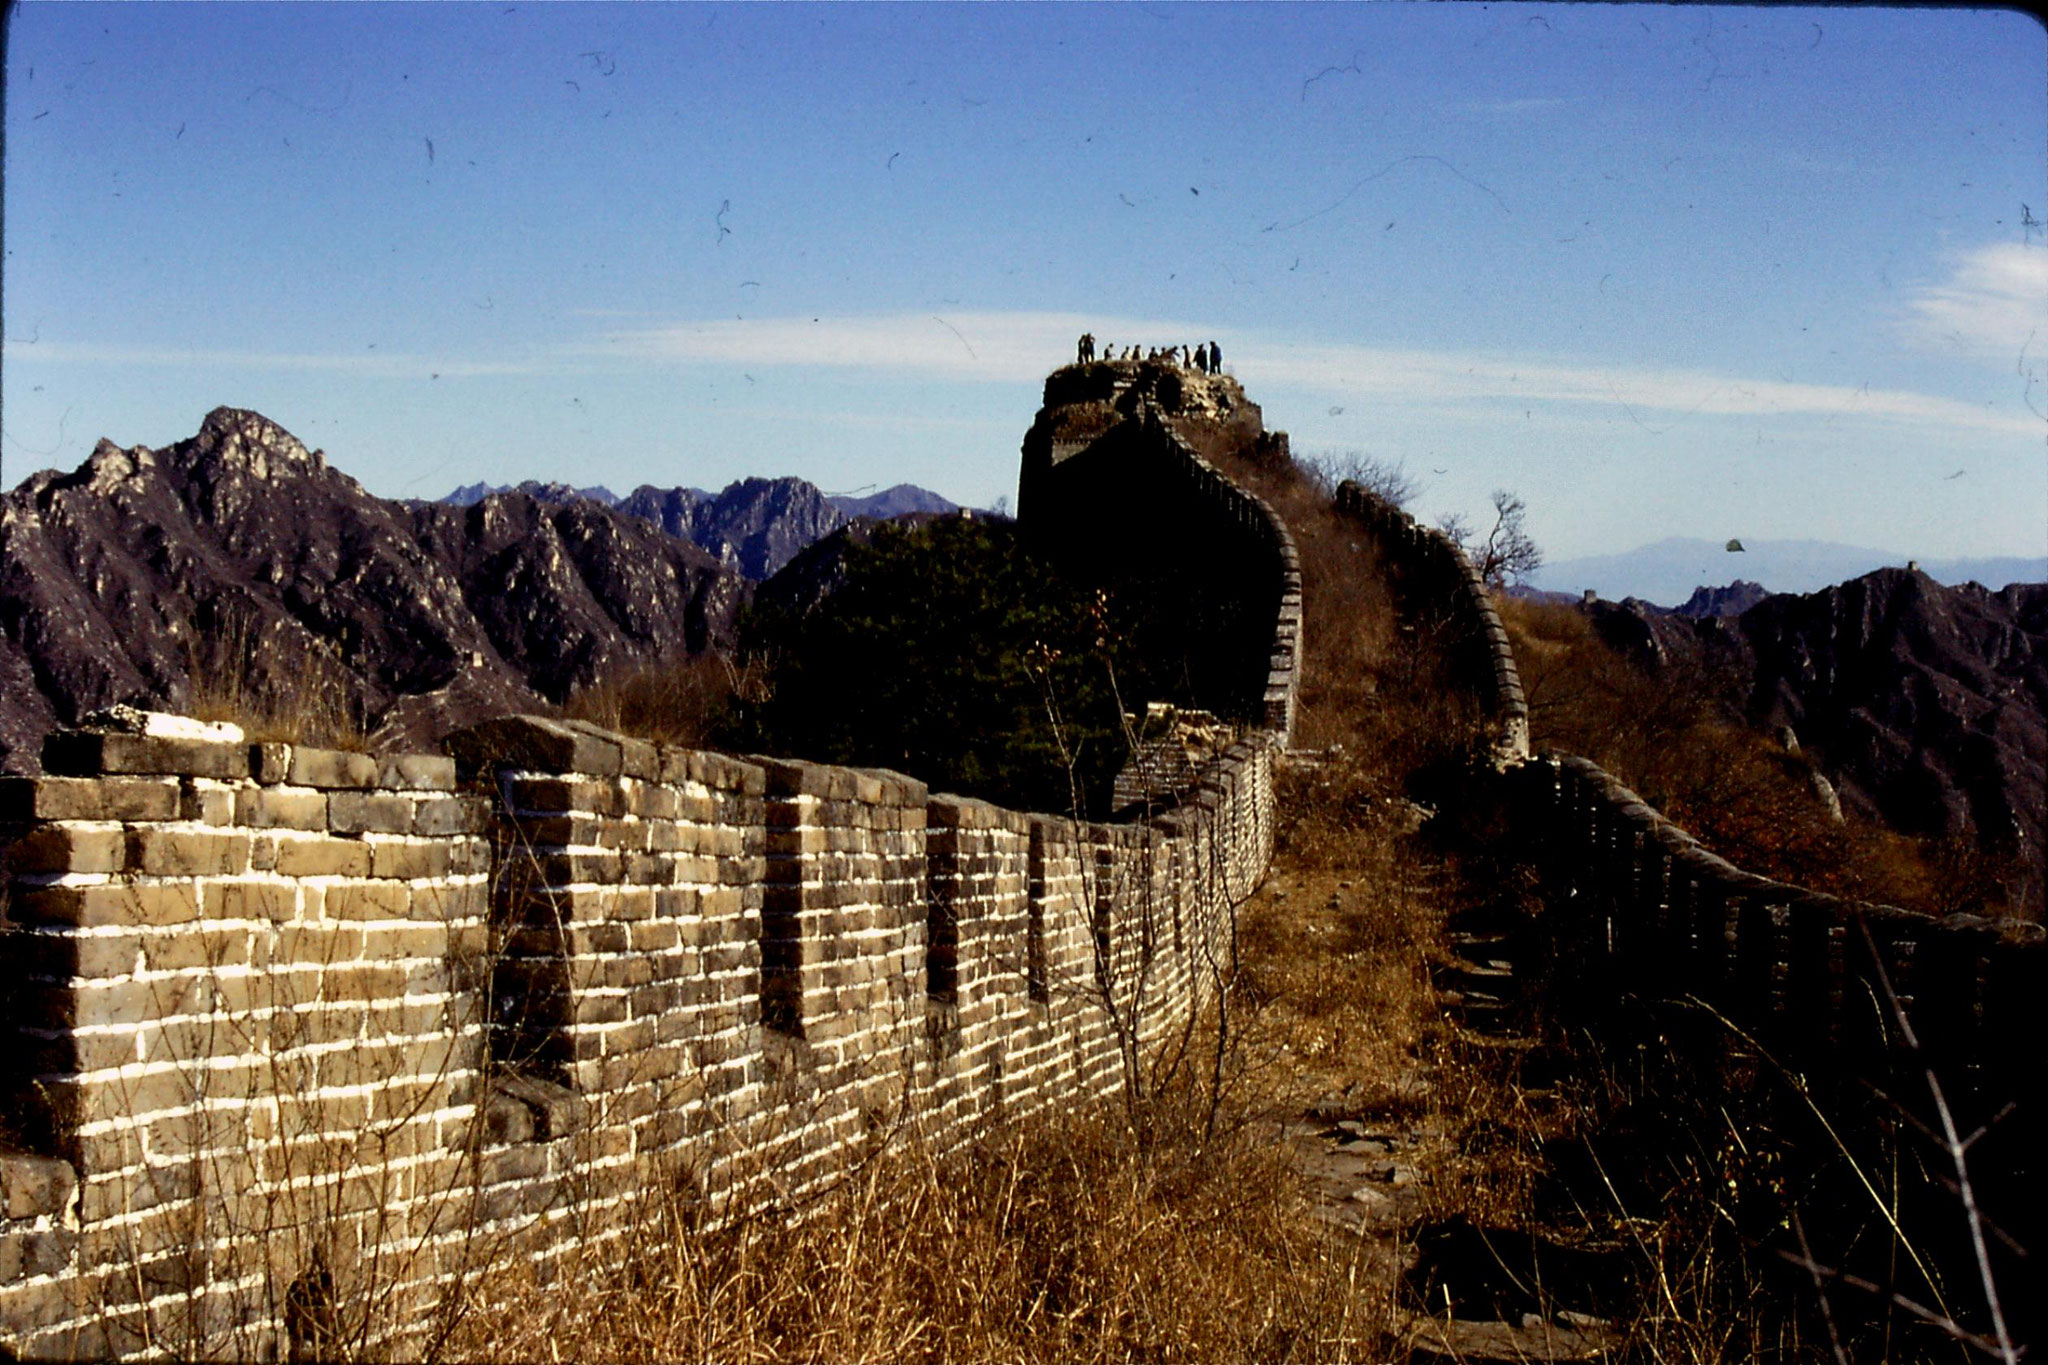 13/11/1988: 17: Great Wall at Mutianyu